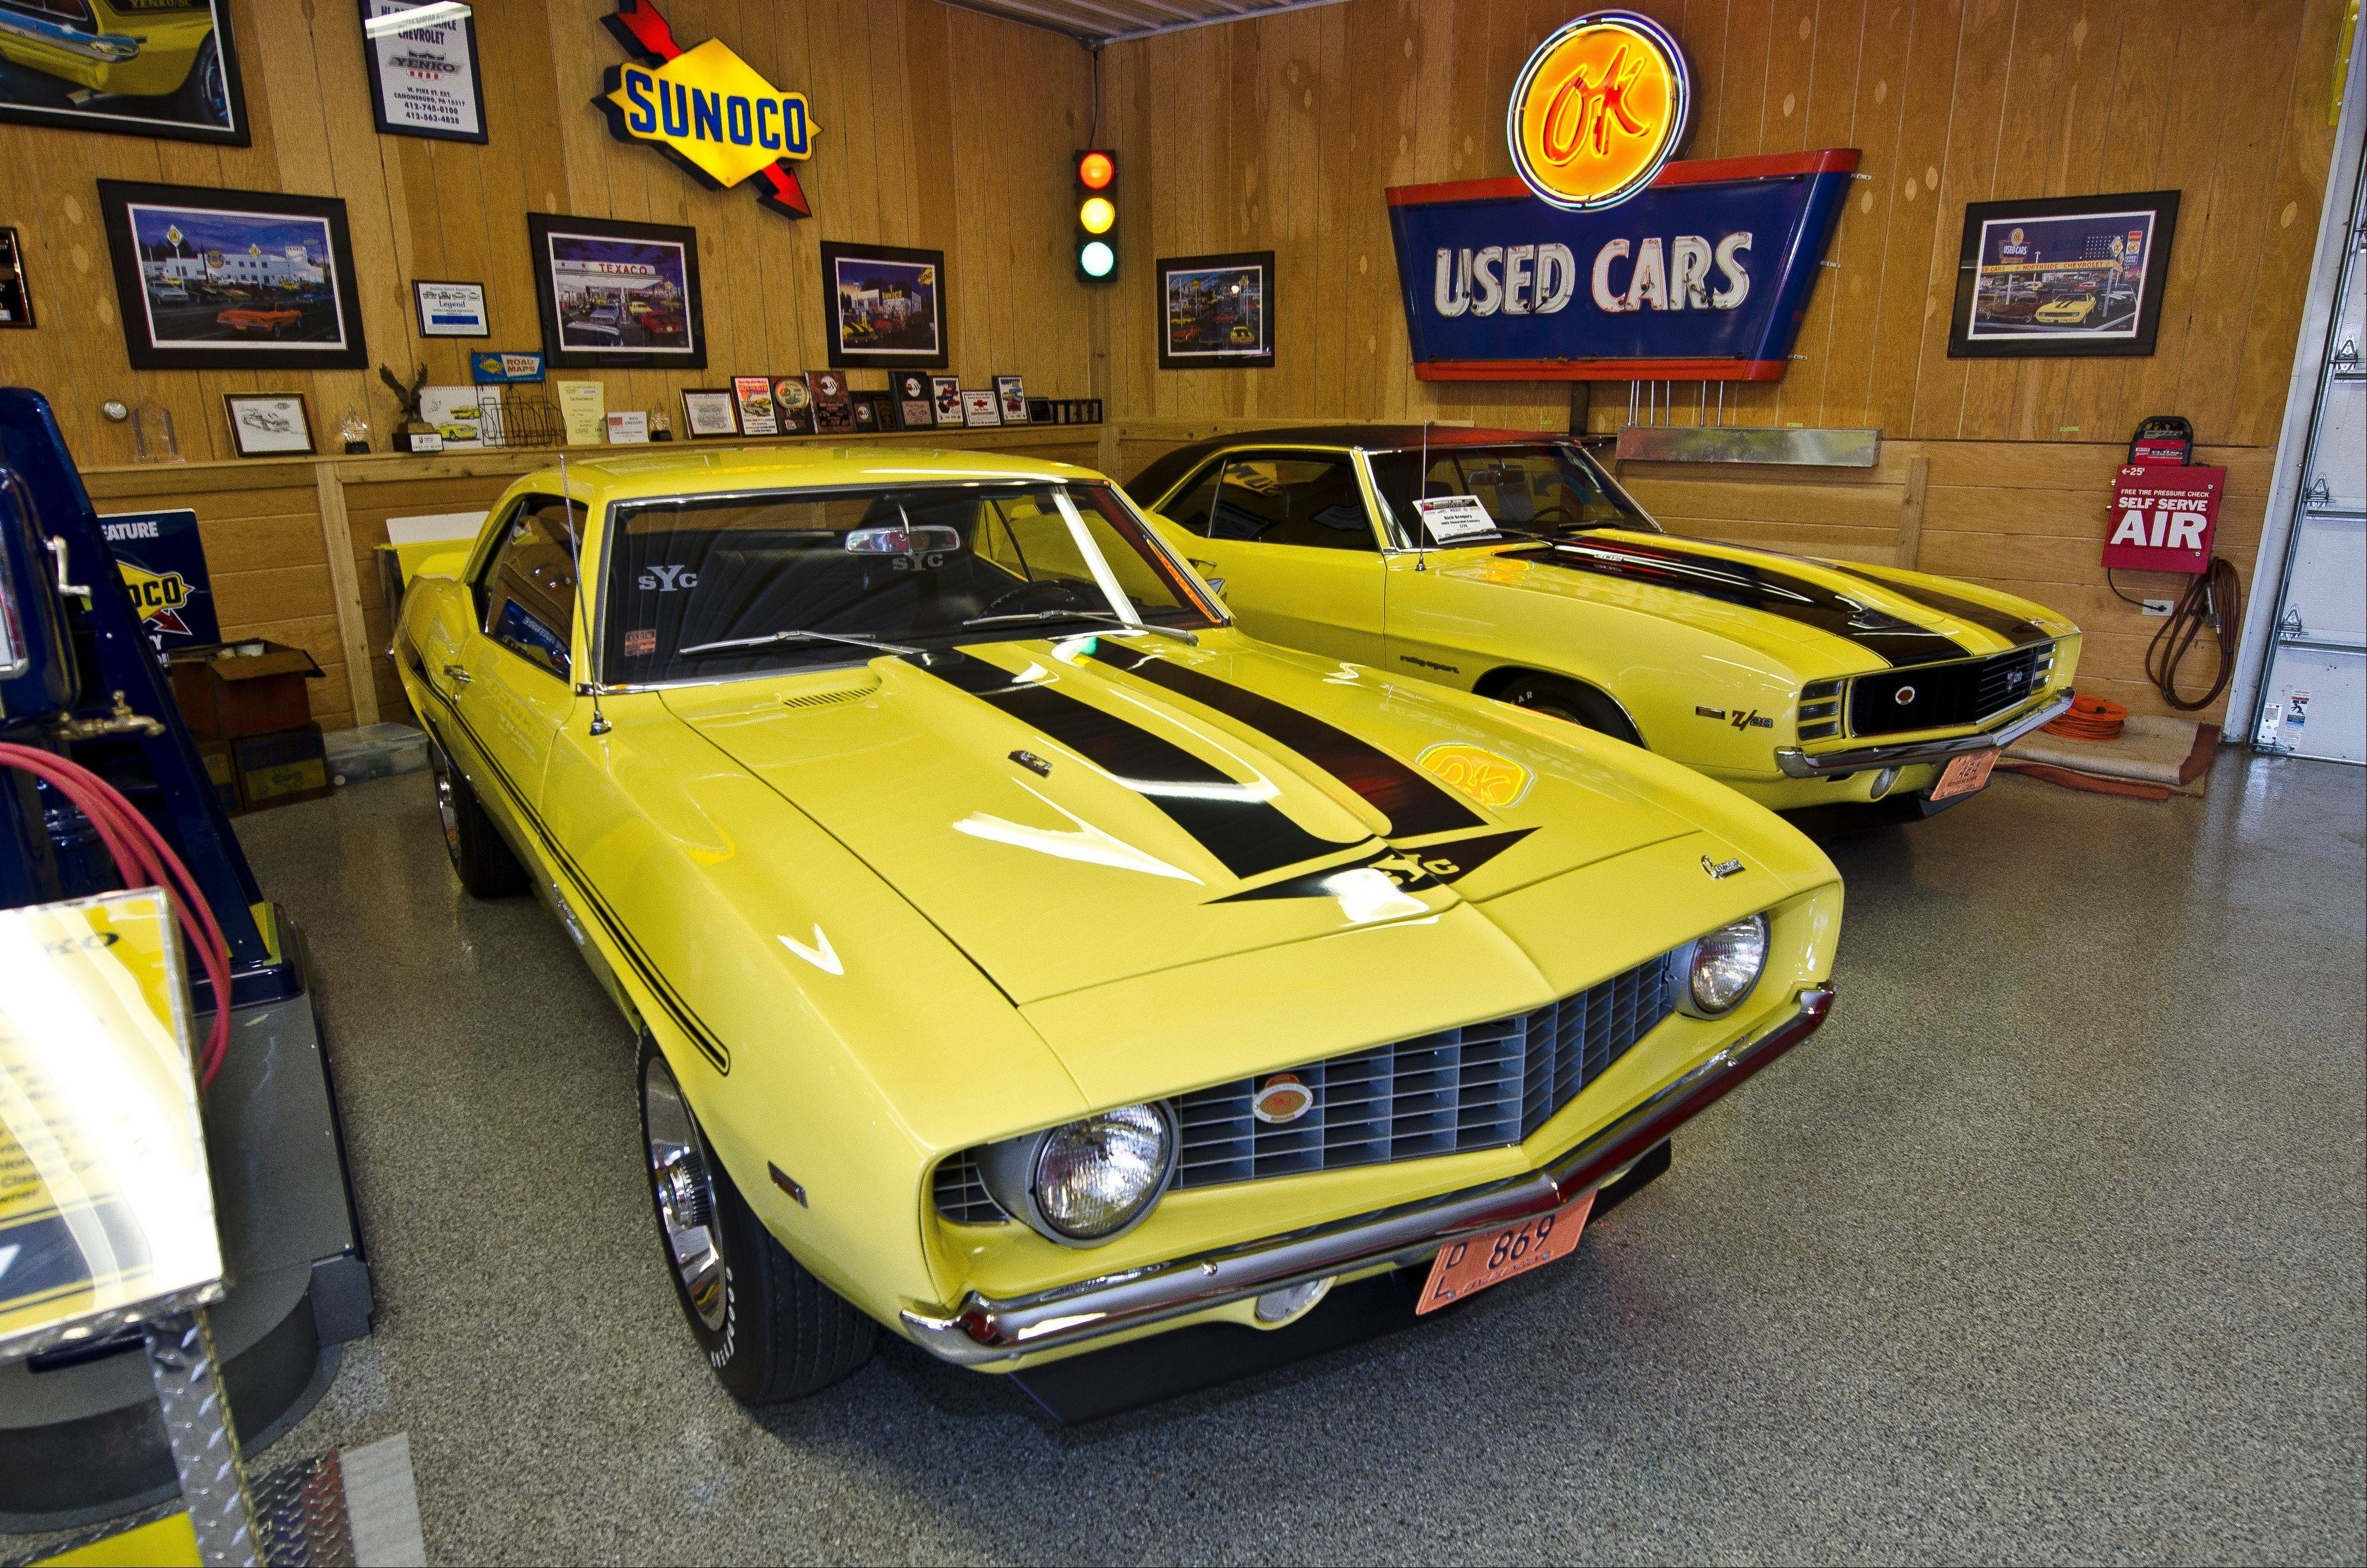 Gregory owns a pair of Daytona Yellow Camaros. His Rally Sport Z/28 was found in downstate Decatur in 1998 and he purchased a Yenko-modified Super Camaro from a friend in Madison, Wis., in 2003.